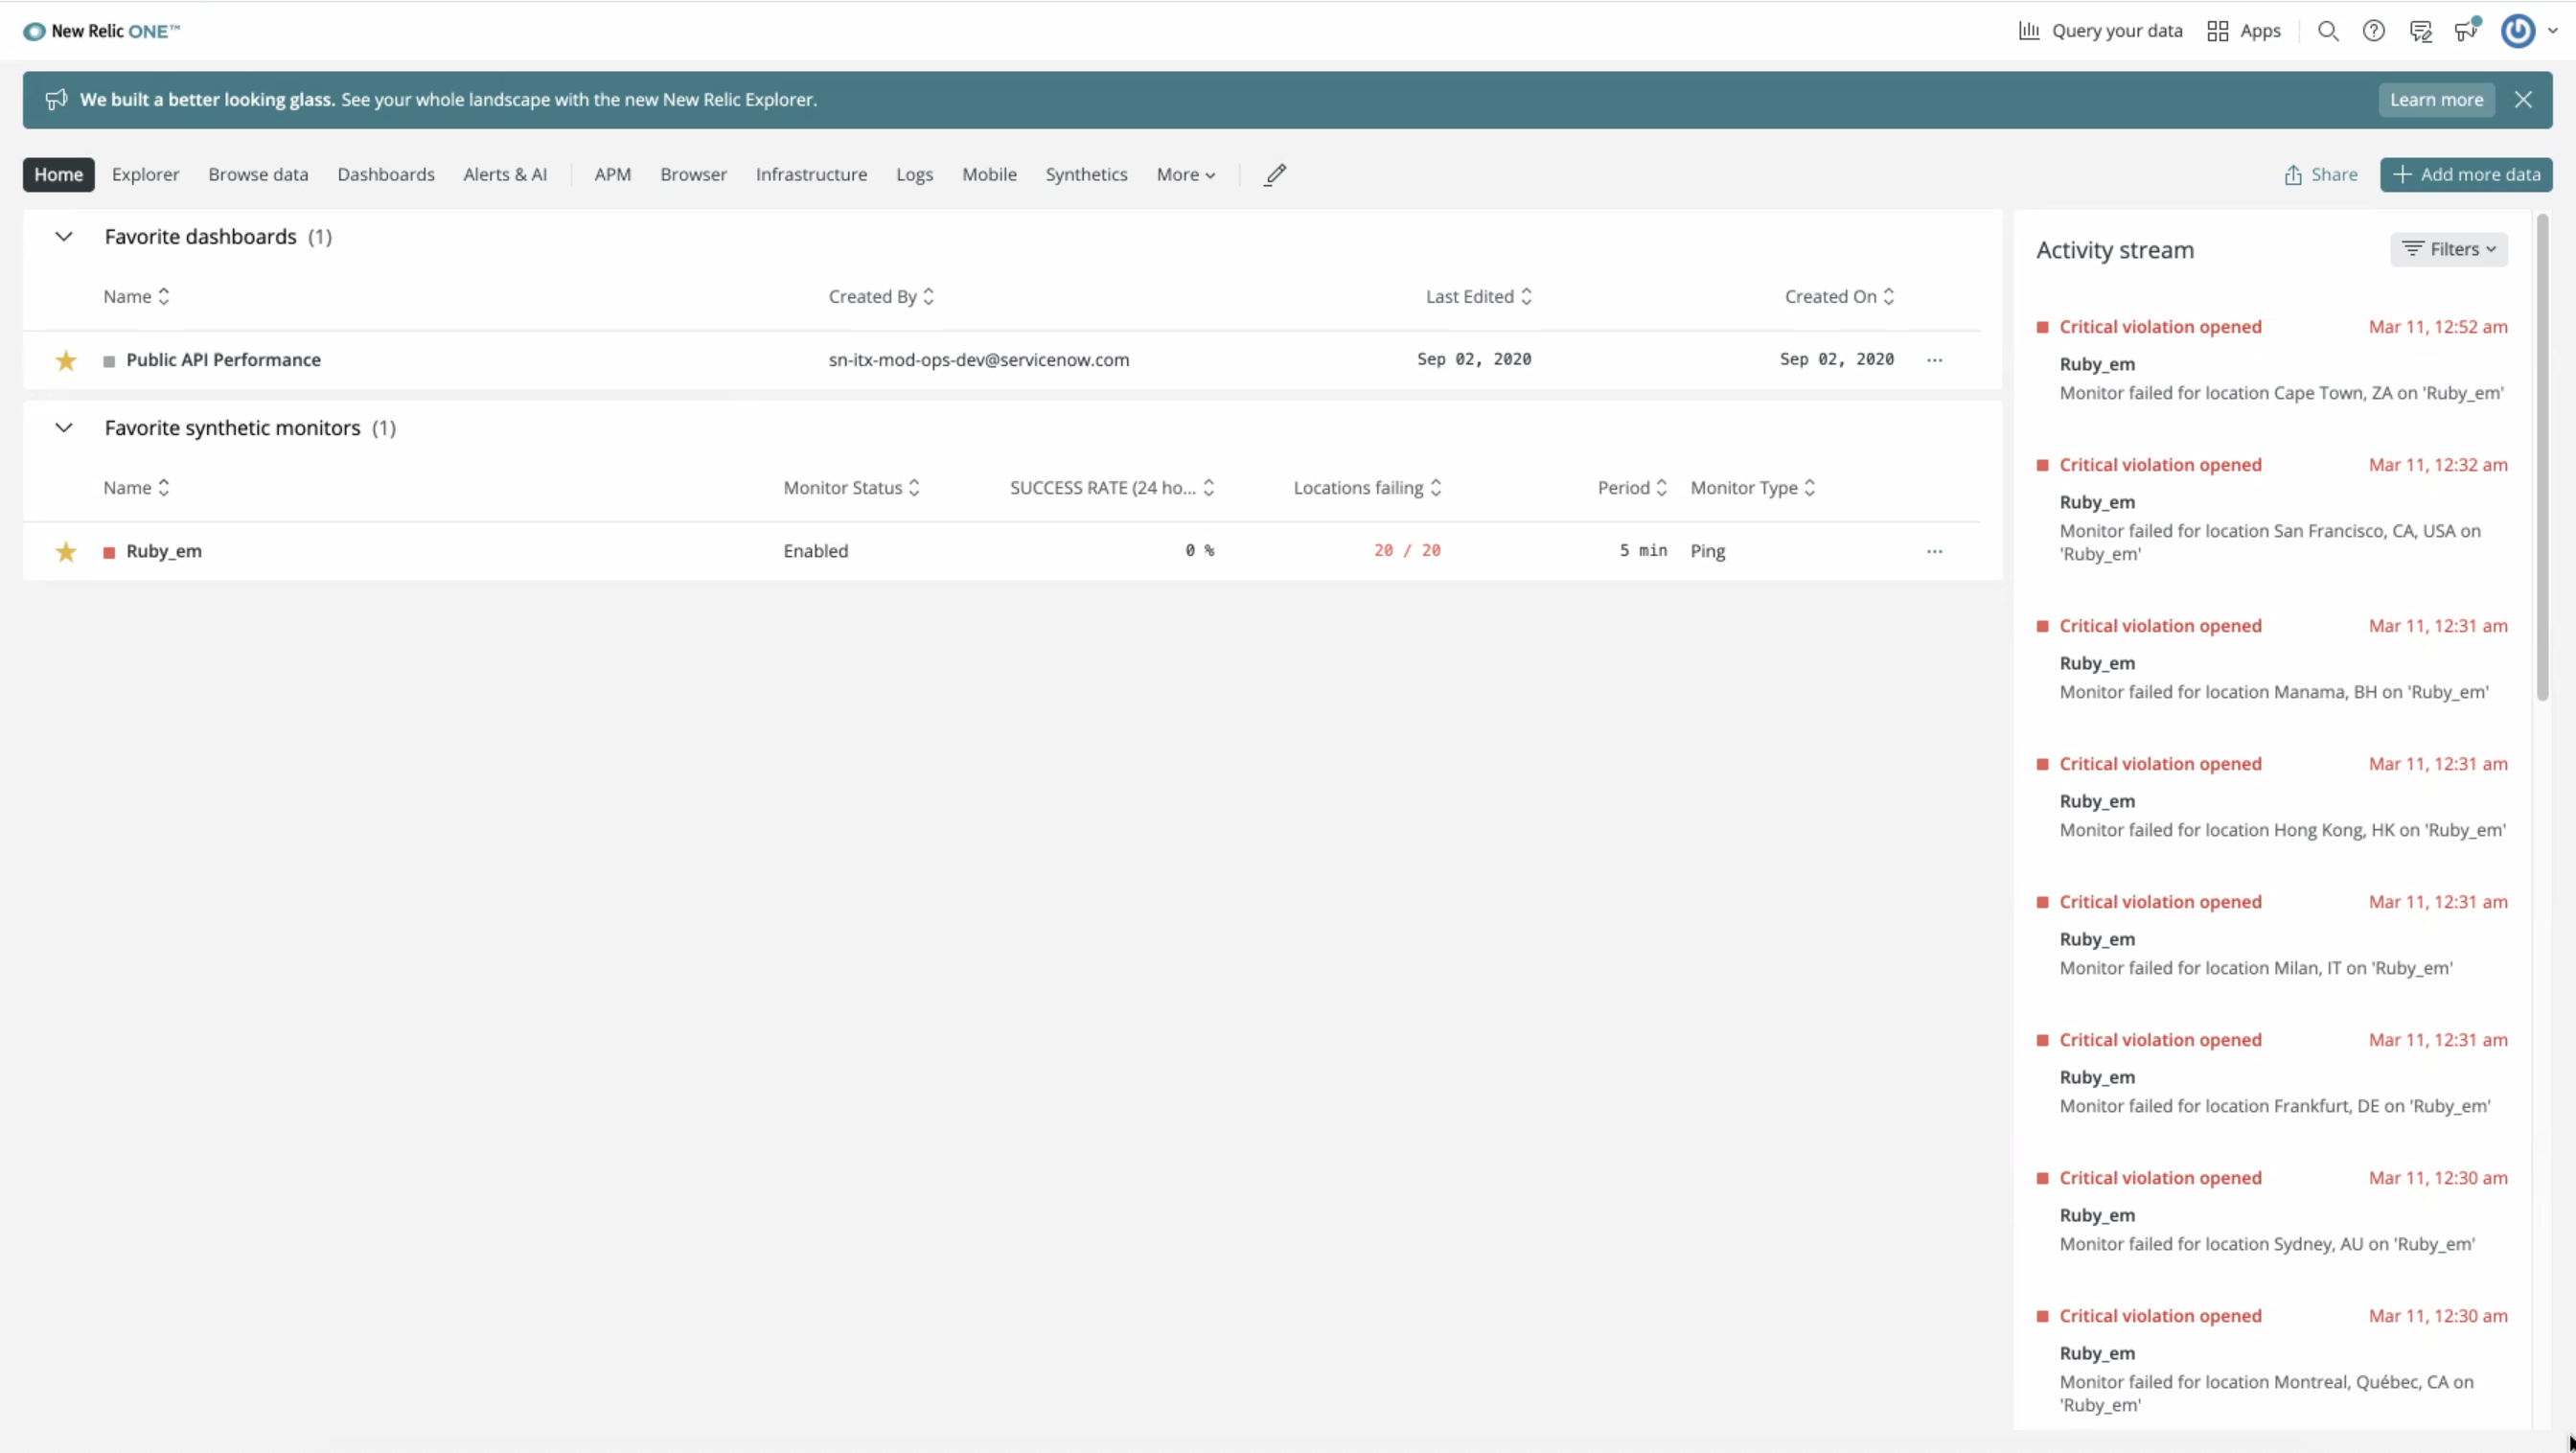 The New Relic homepage.